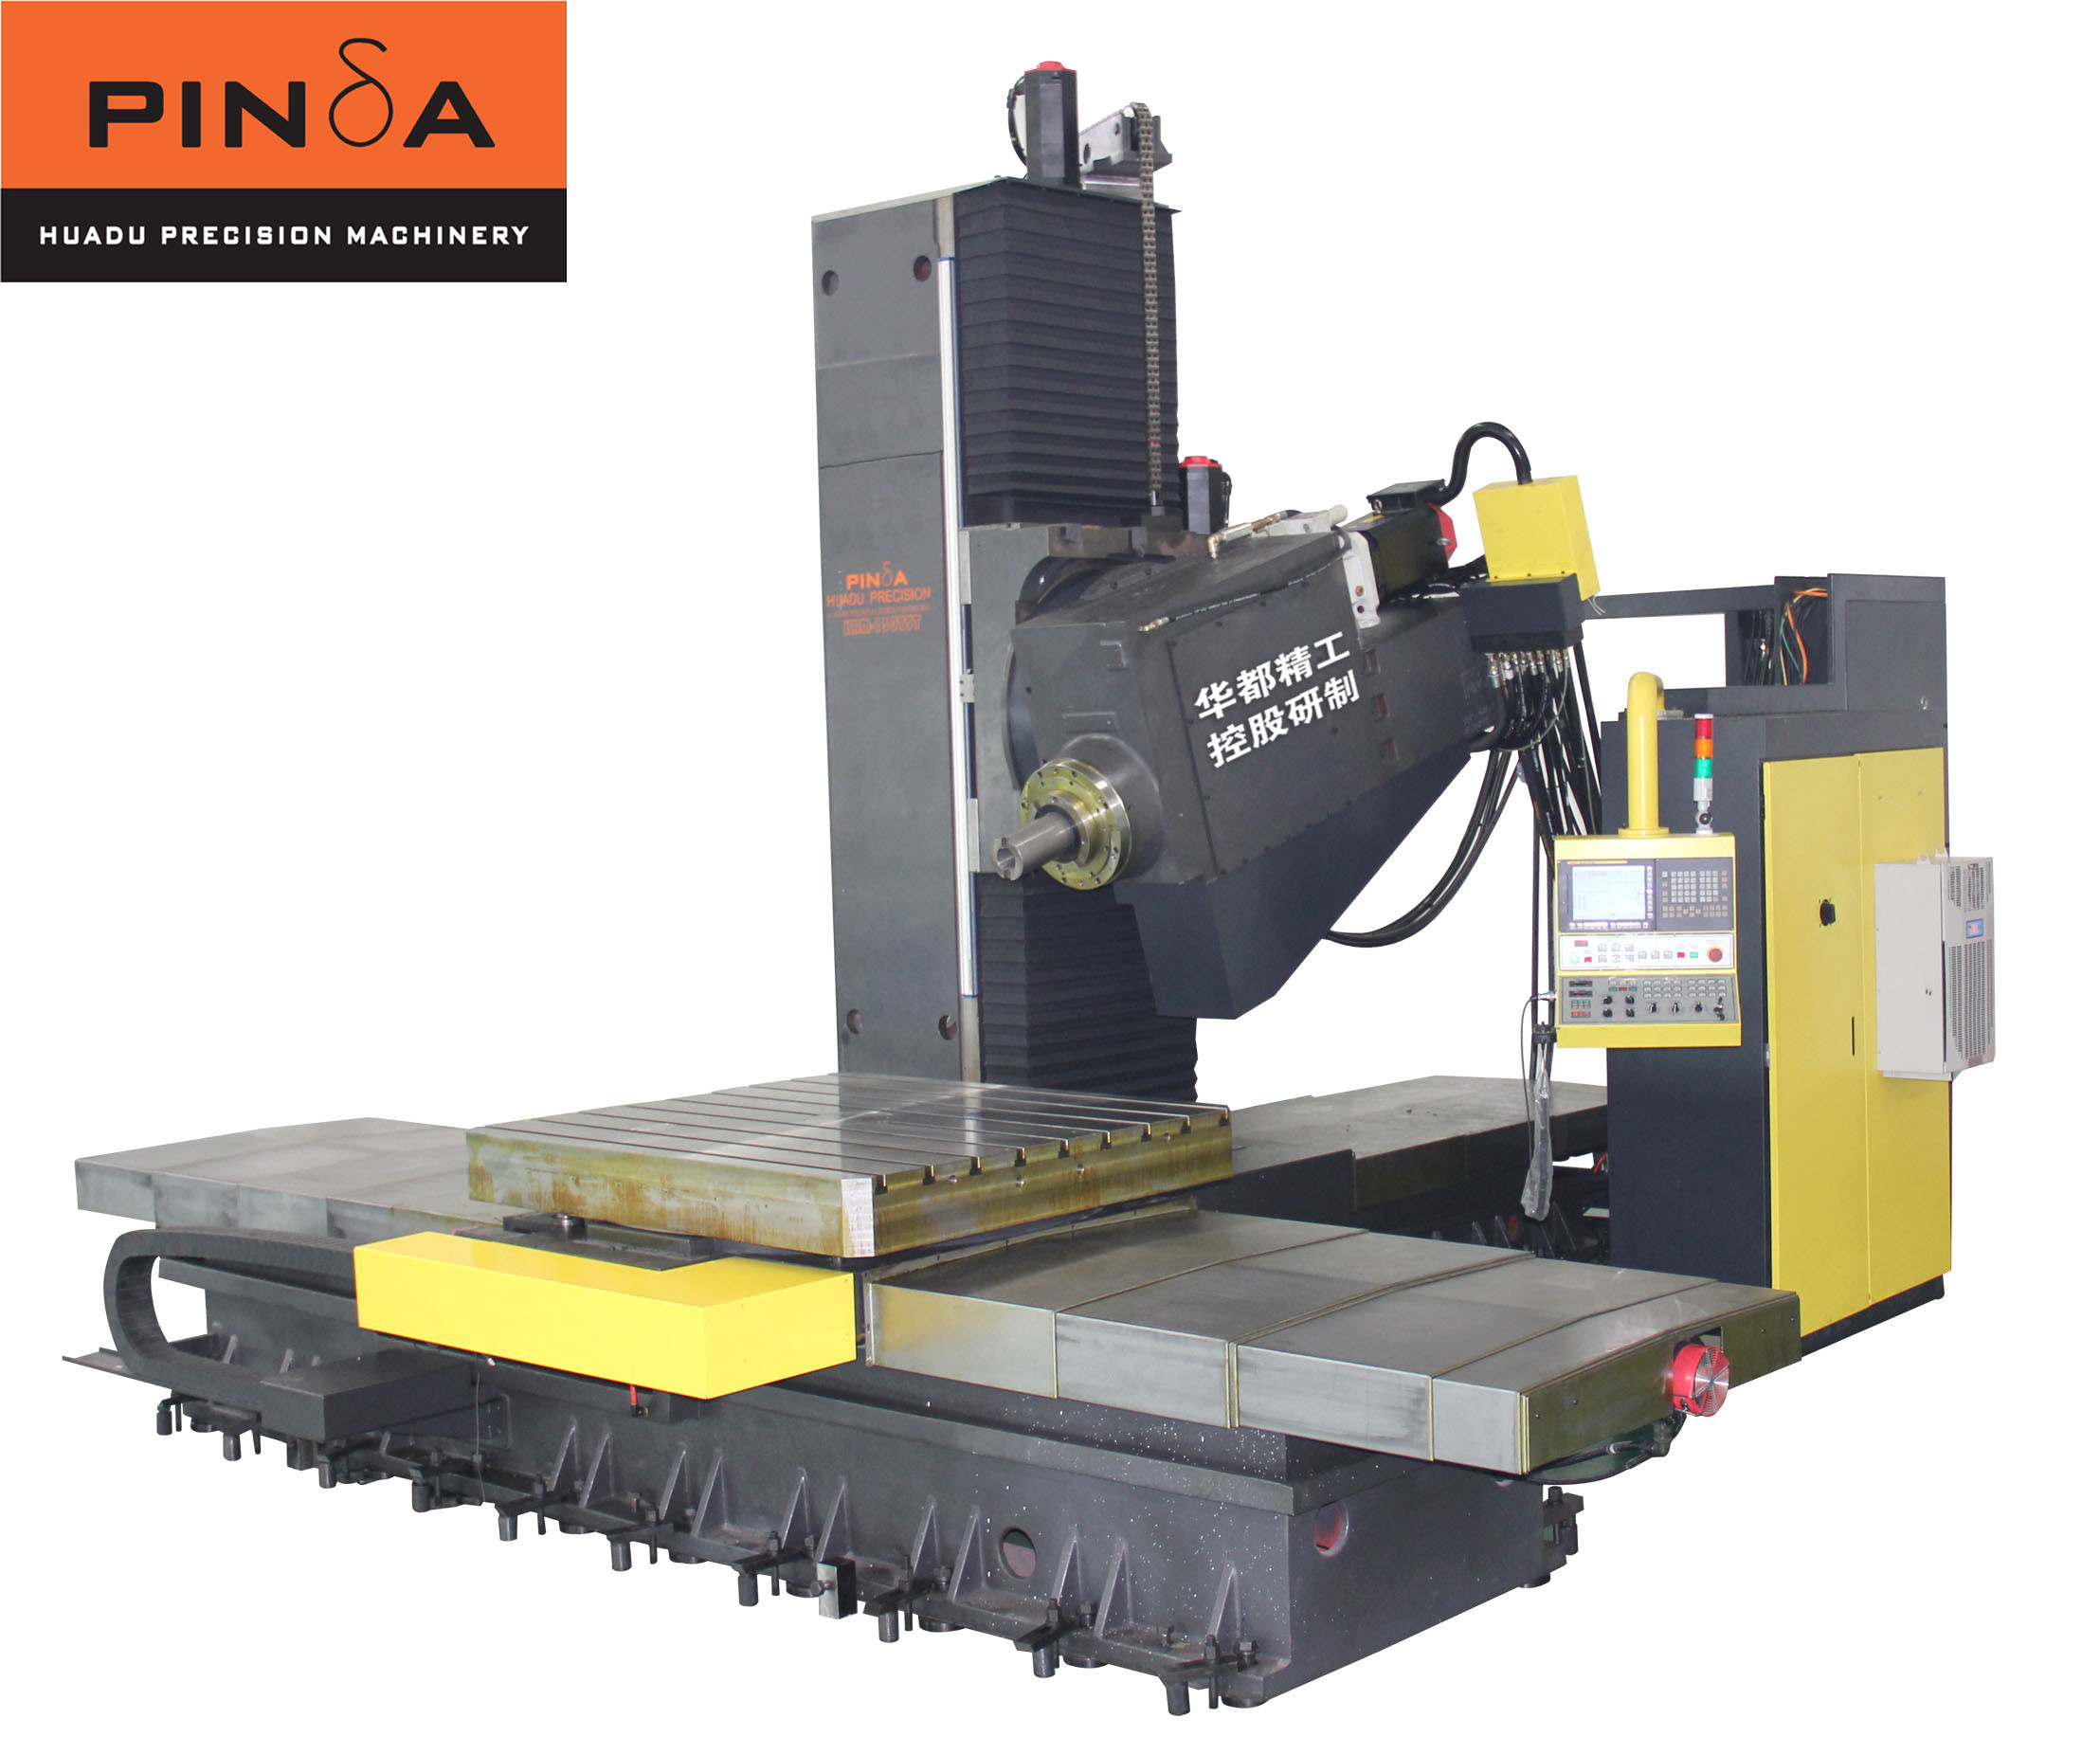 Six Axis Horizental Boring and Milling CNC Hbm-130t3t